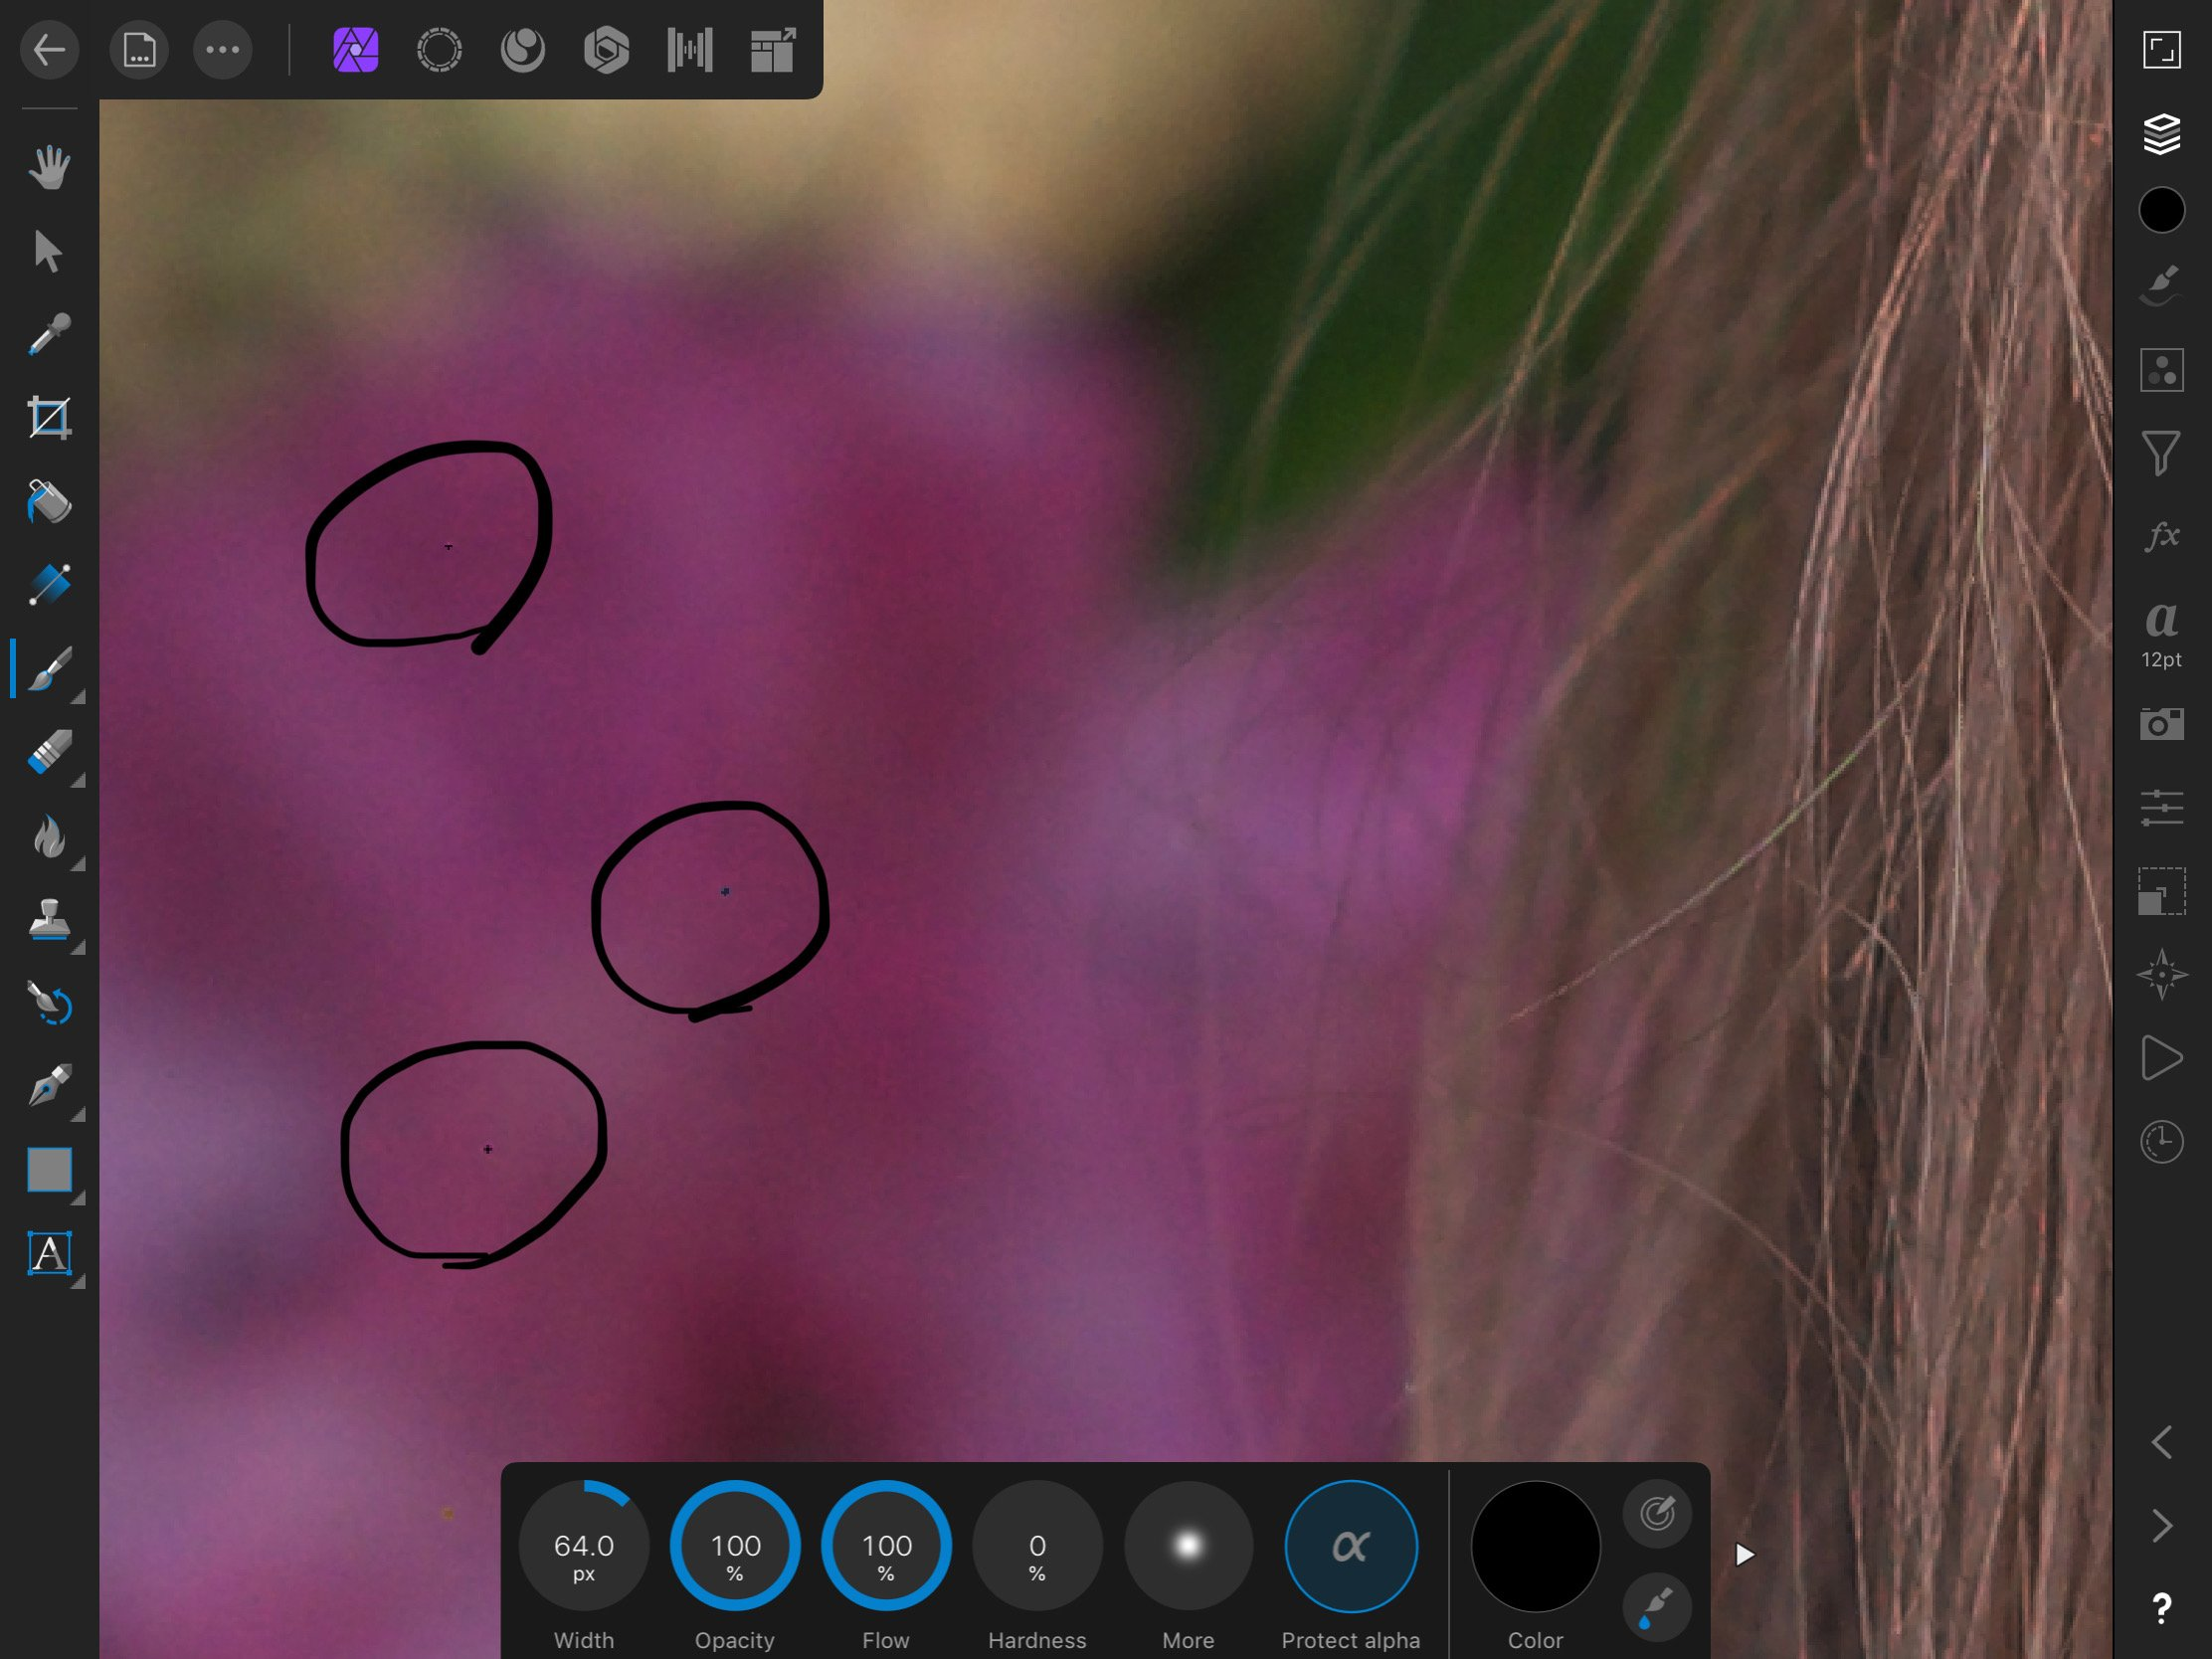 Dead pixel on raw image - Affinity on iPad Questions - Affinity | Forum